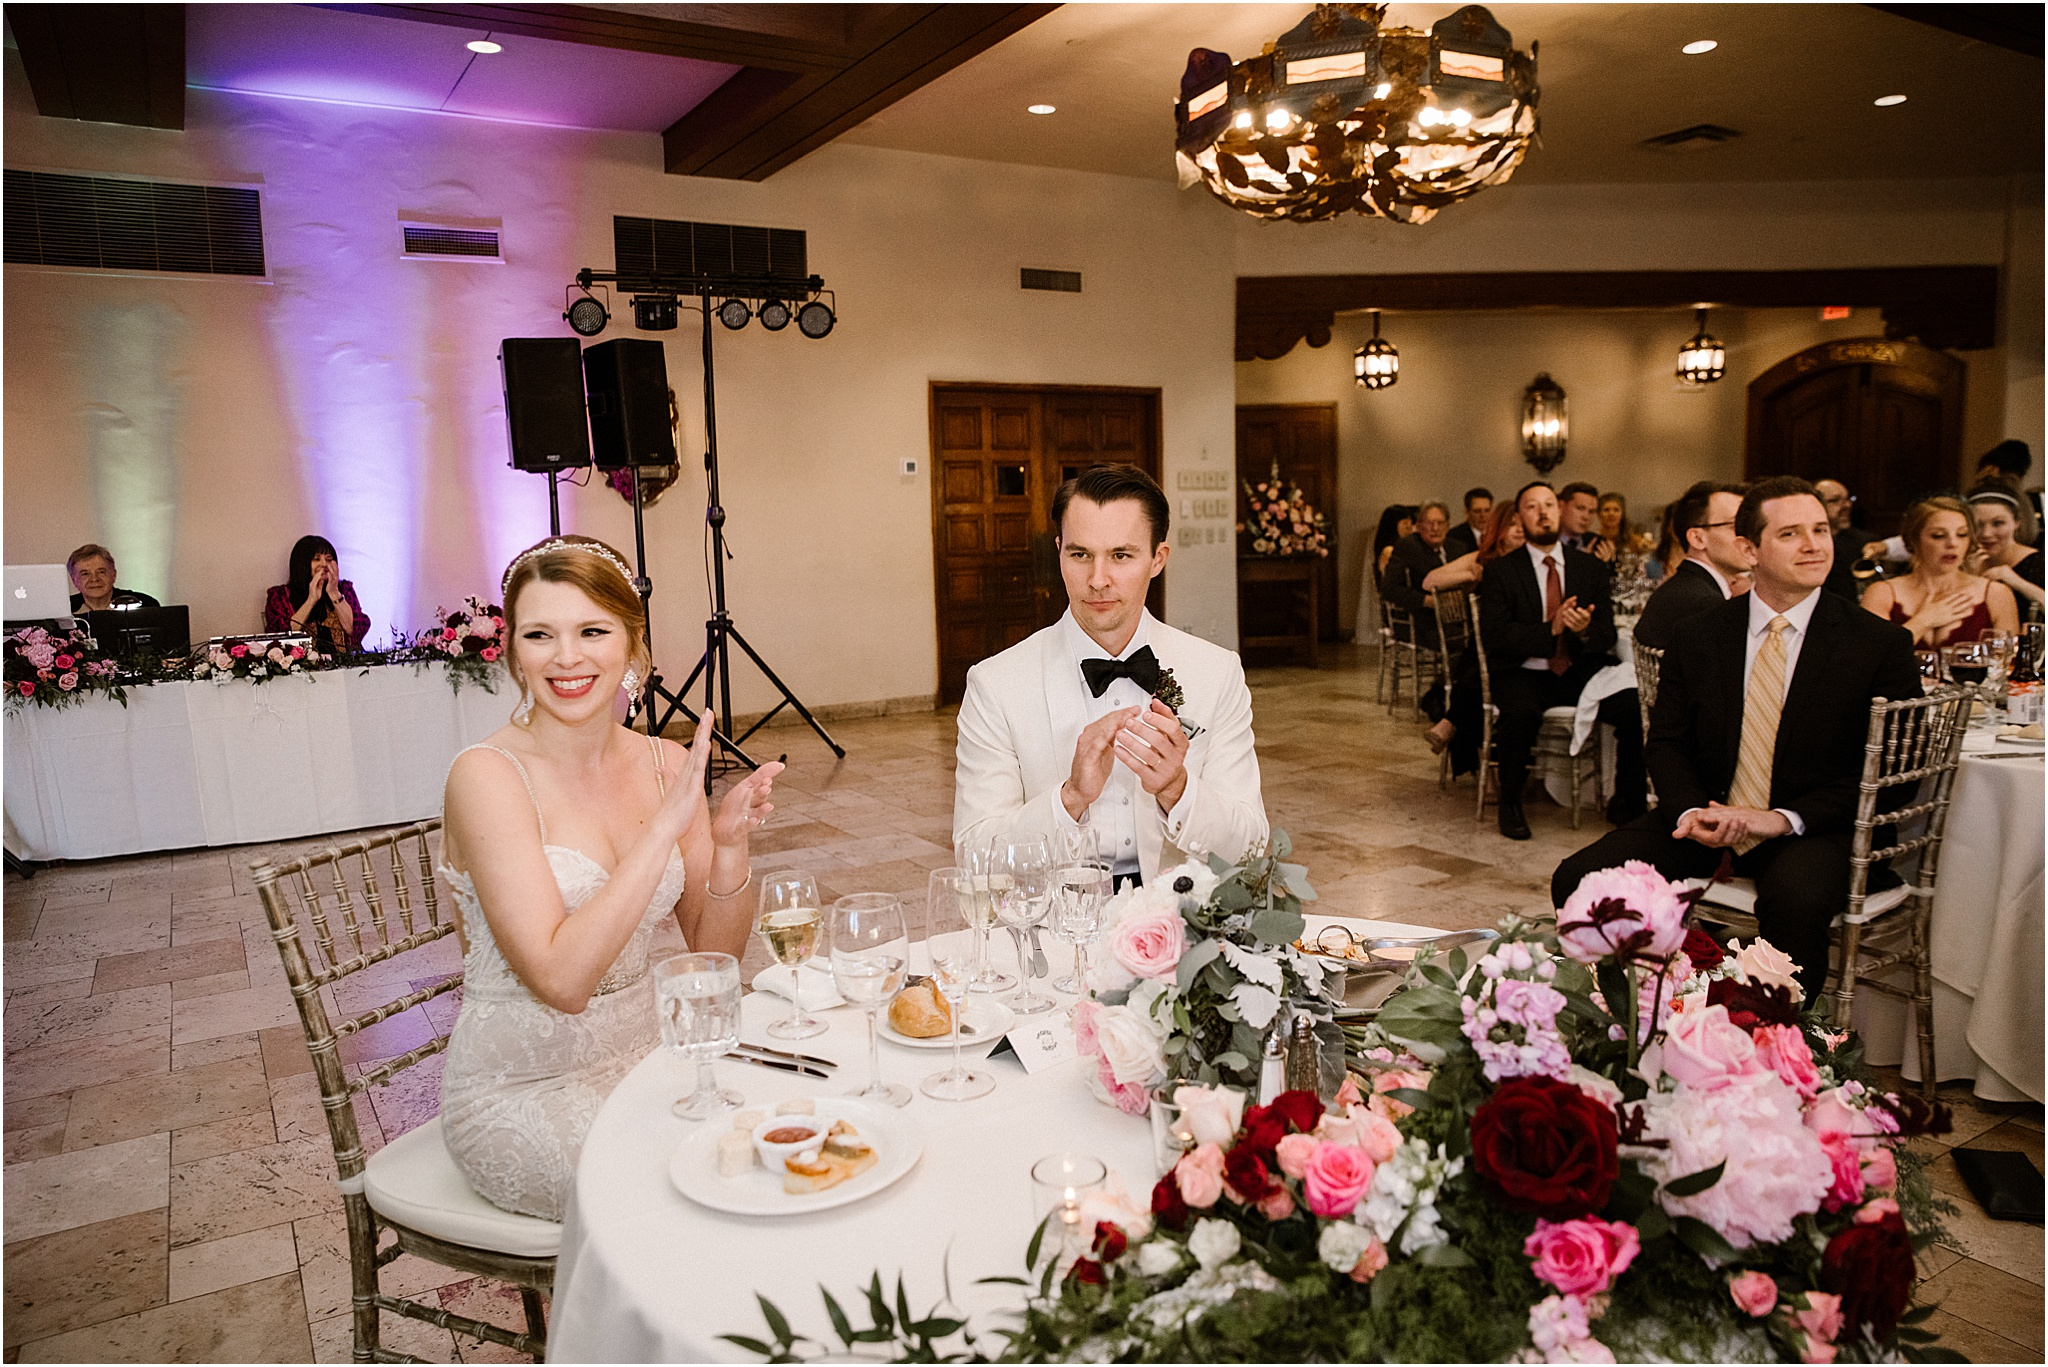 BLUE ROSE PHOTOGRAPHY SANTA FE WEDDING_48